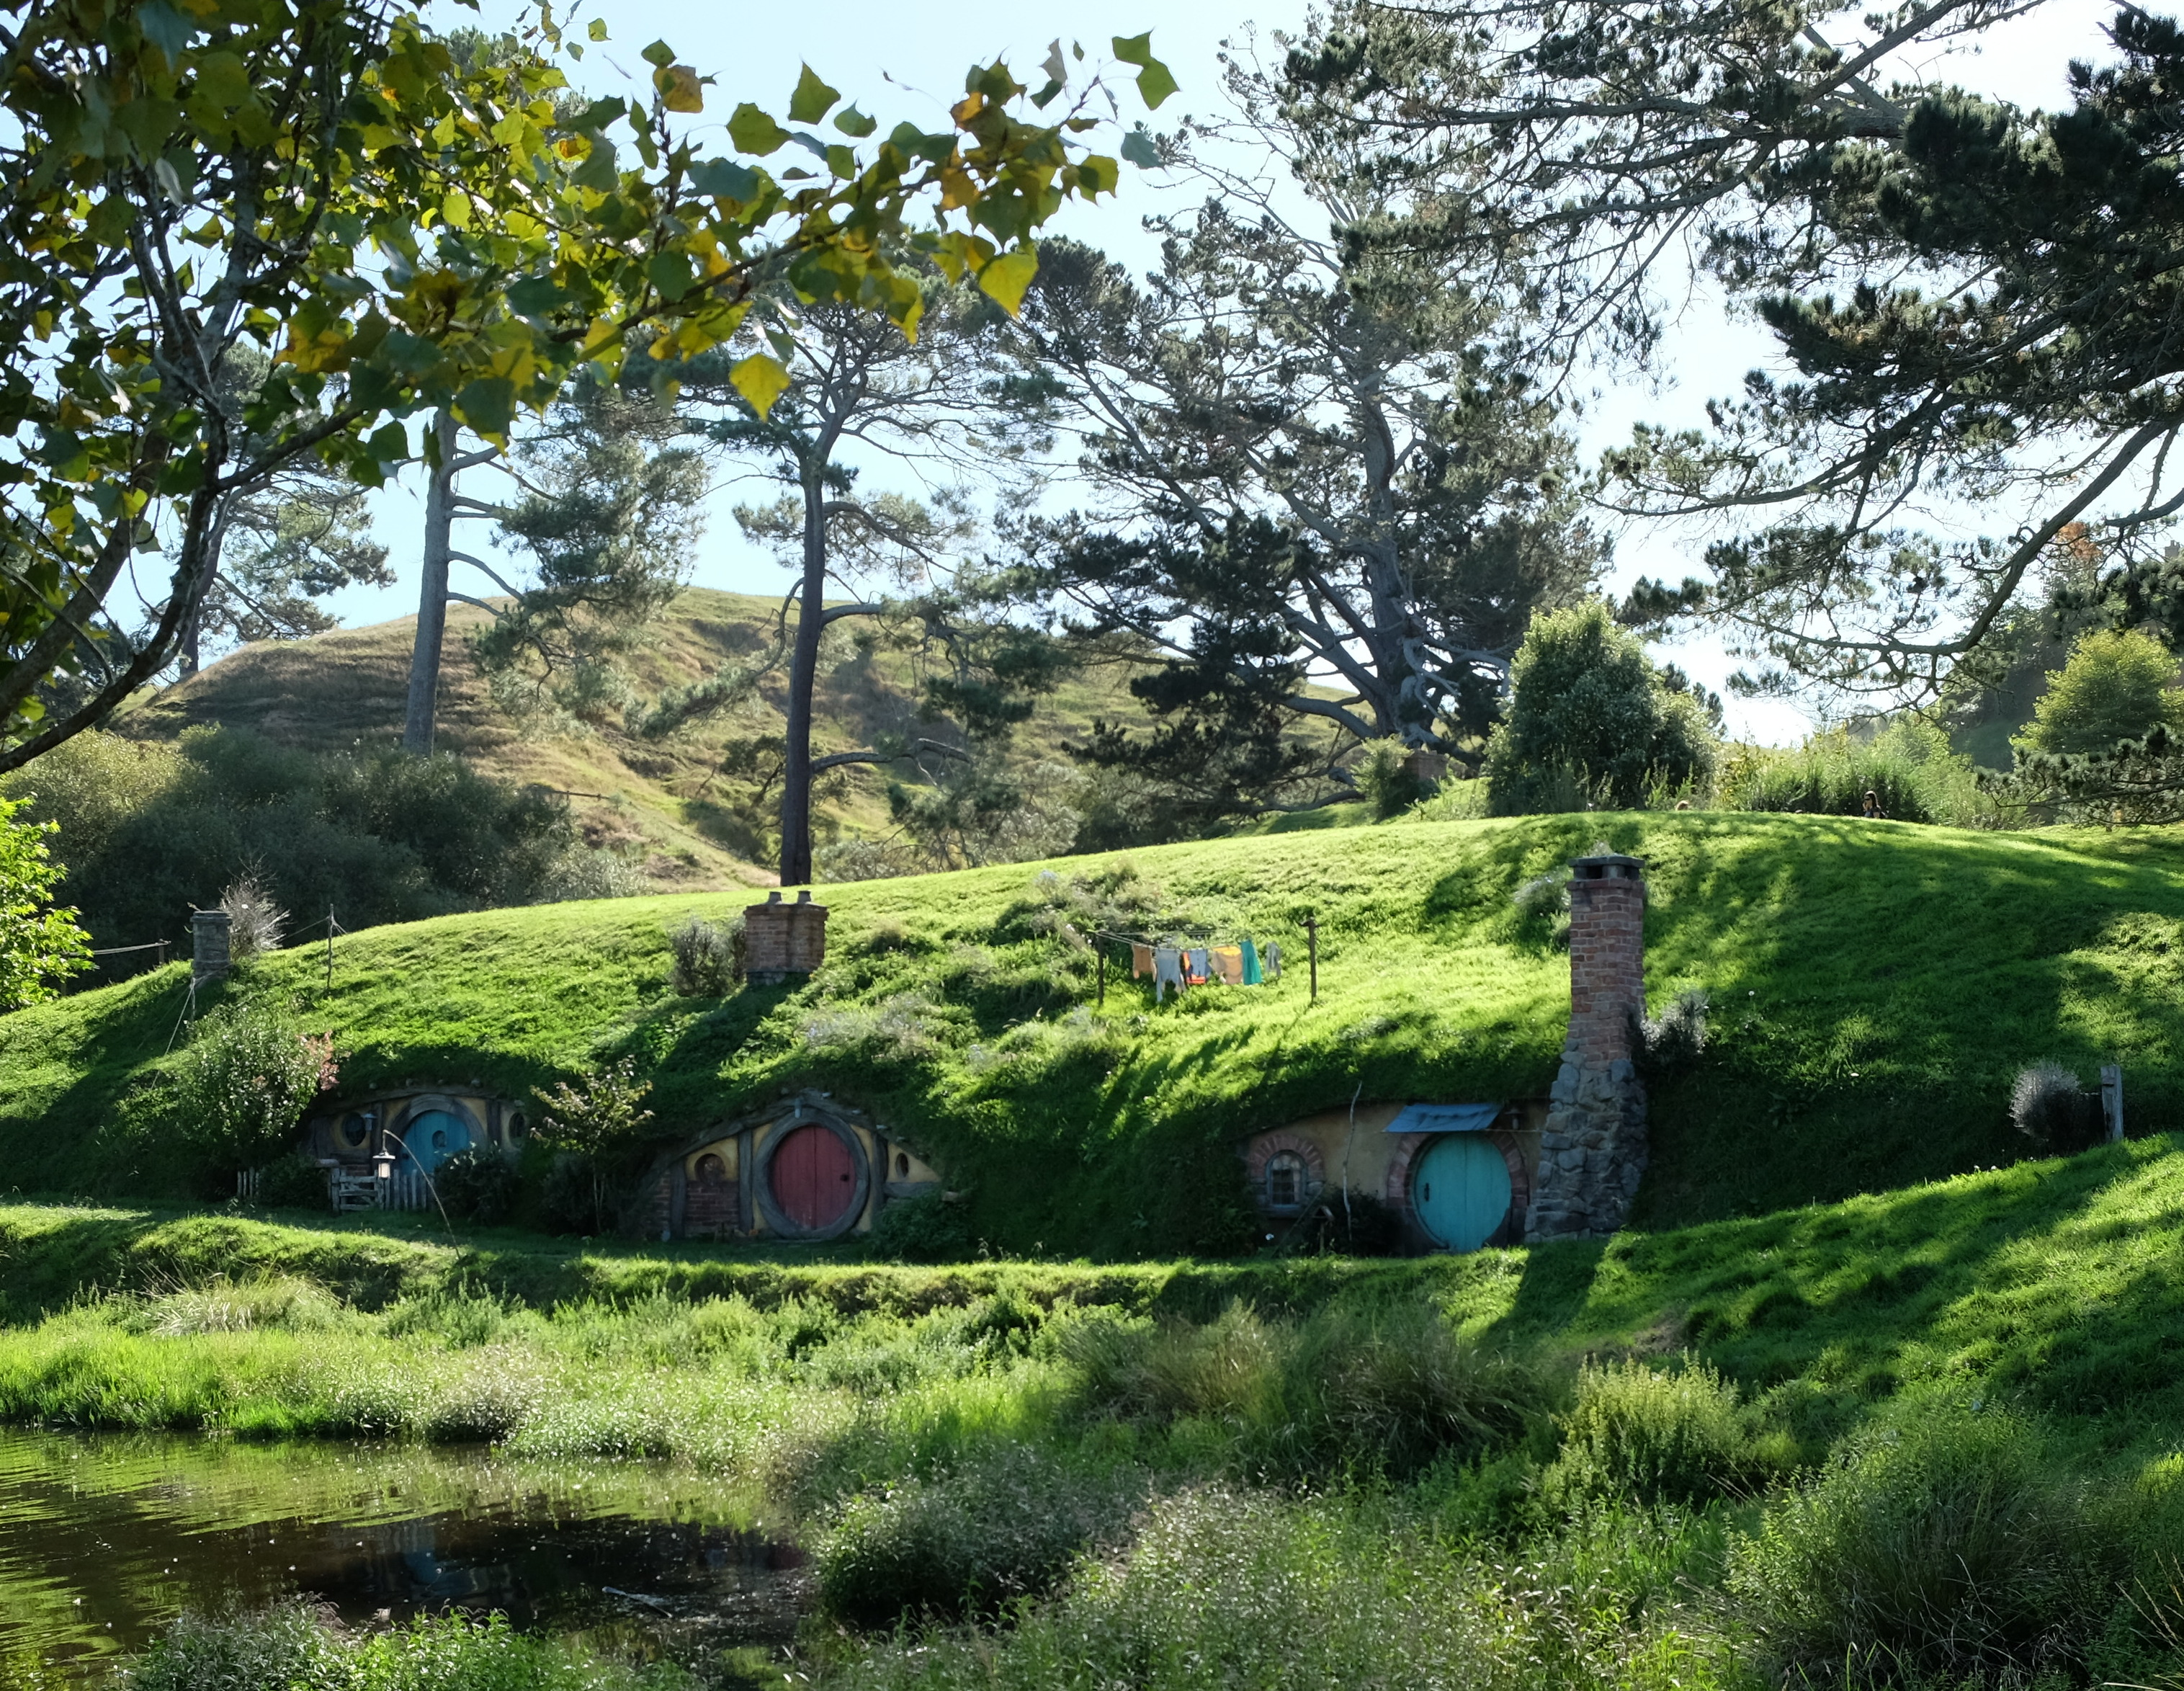 The grounds at the Hobbiton Movie Set are beautiful, even if you don't care about the movies. - JIM BYERS PHOTO